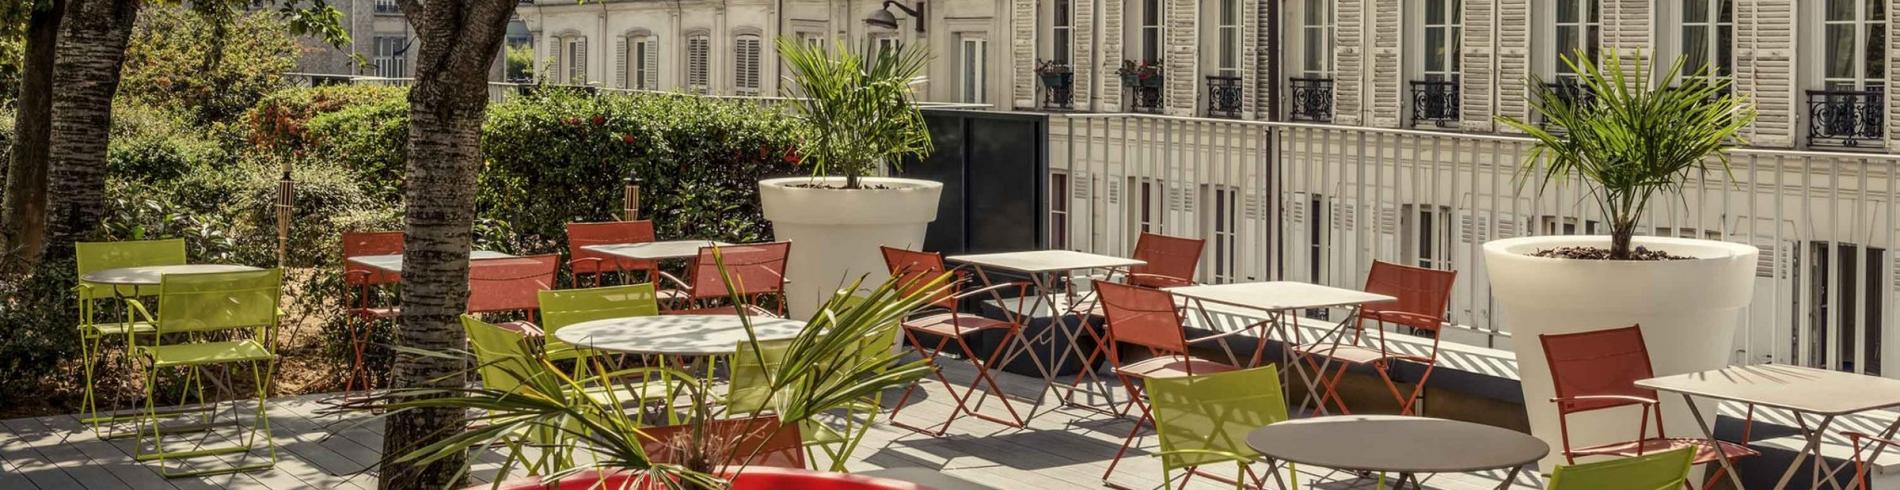 The terrace at the Mercure Montmartre hotel